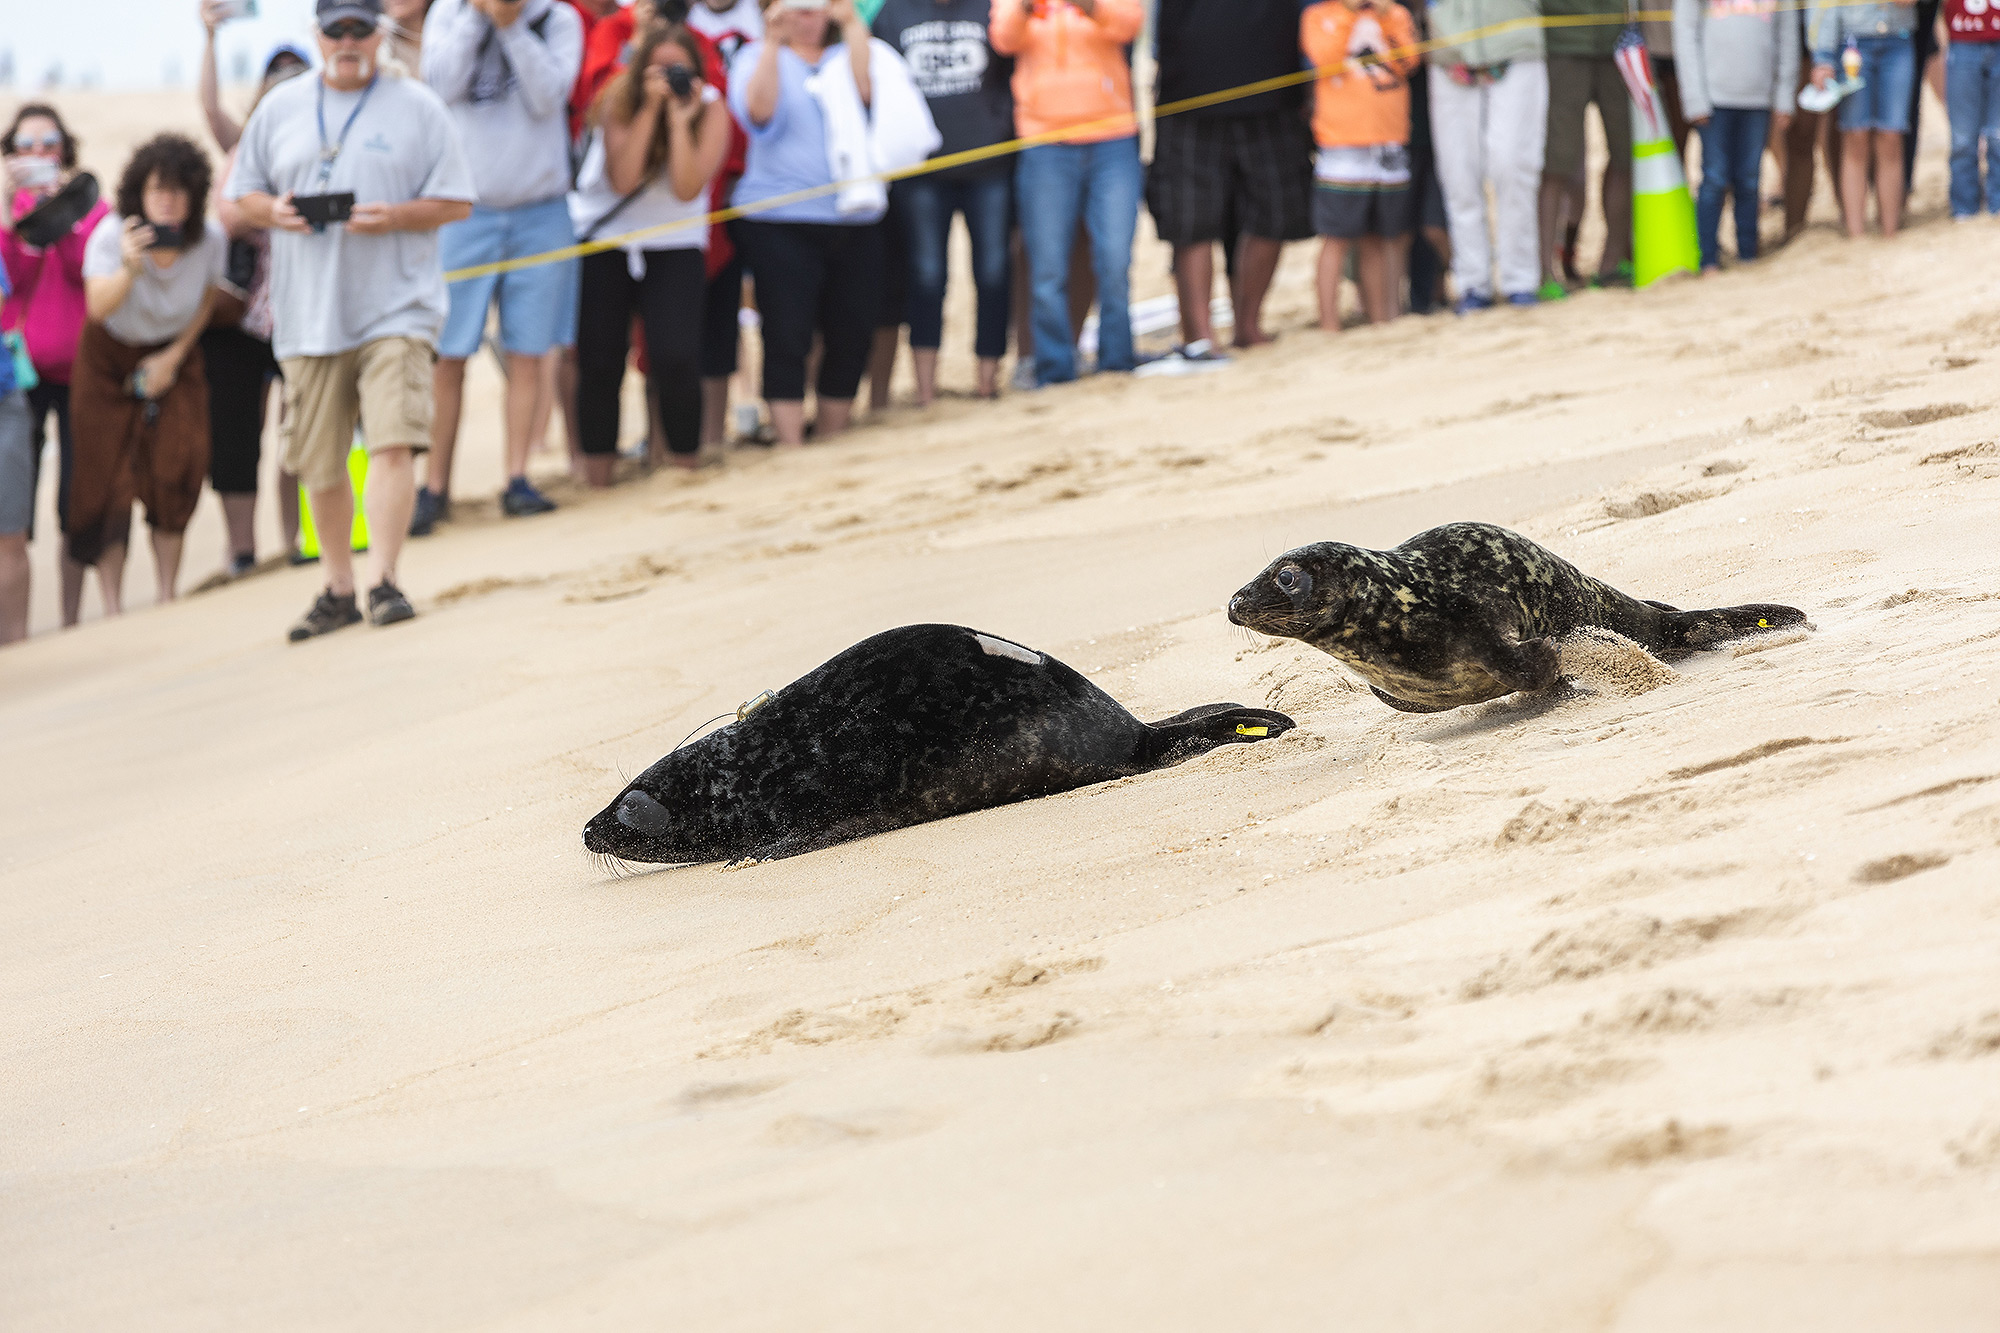 Grey seals Edwin Hubble and George Washington Carver are released in Ocean City, Maryland | May 23, 2019